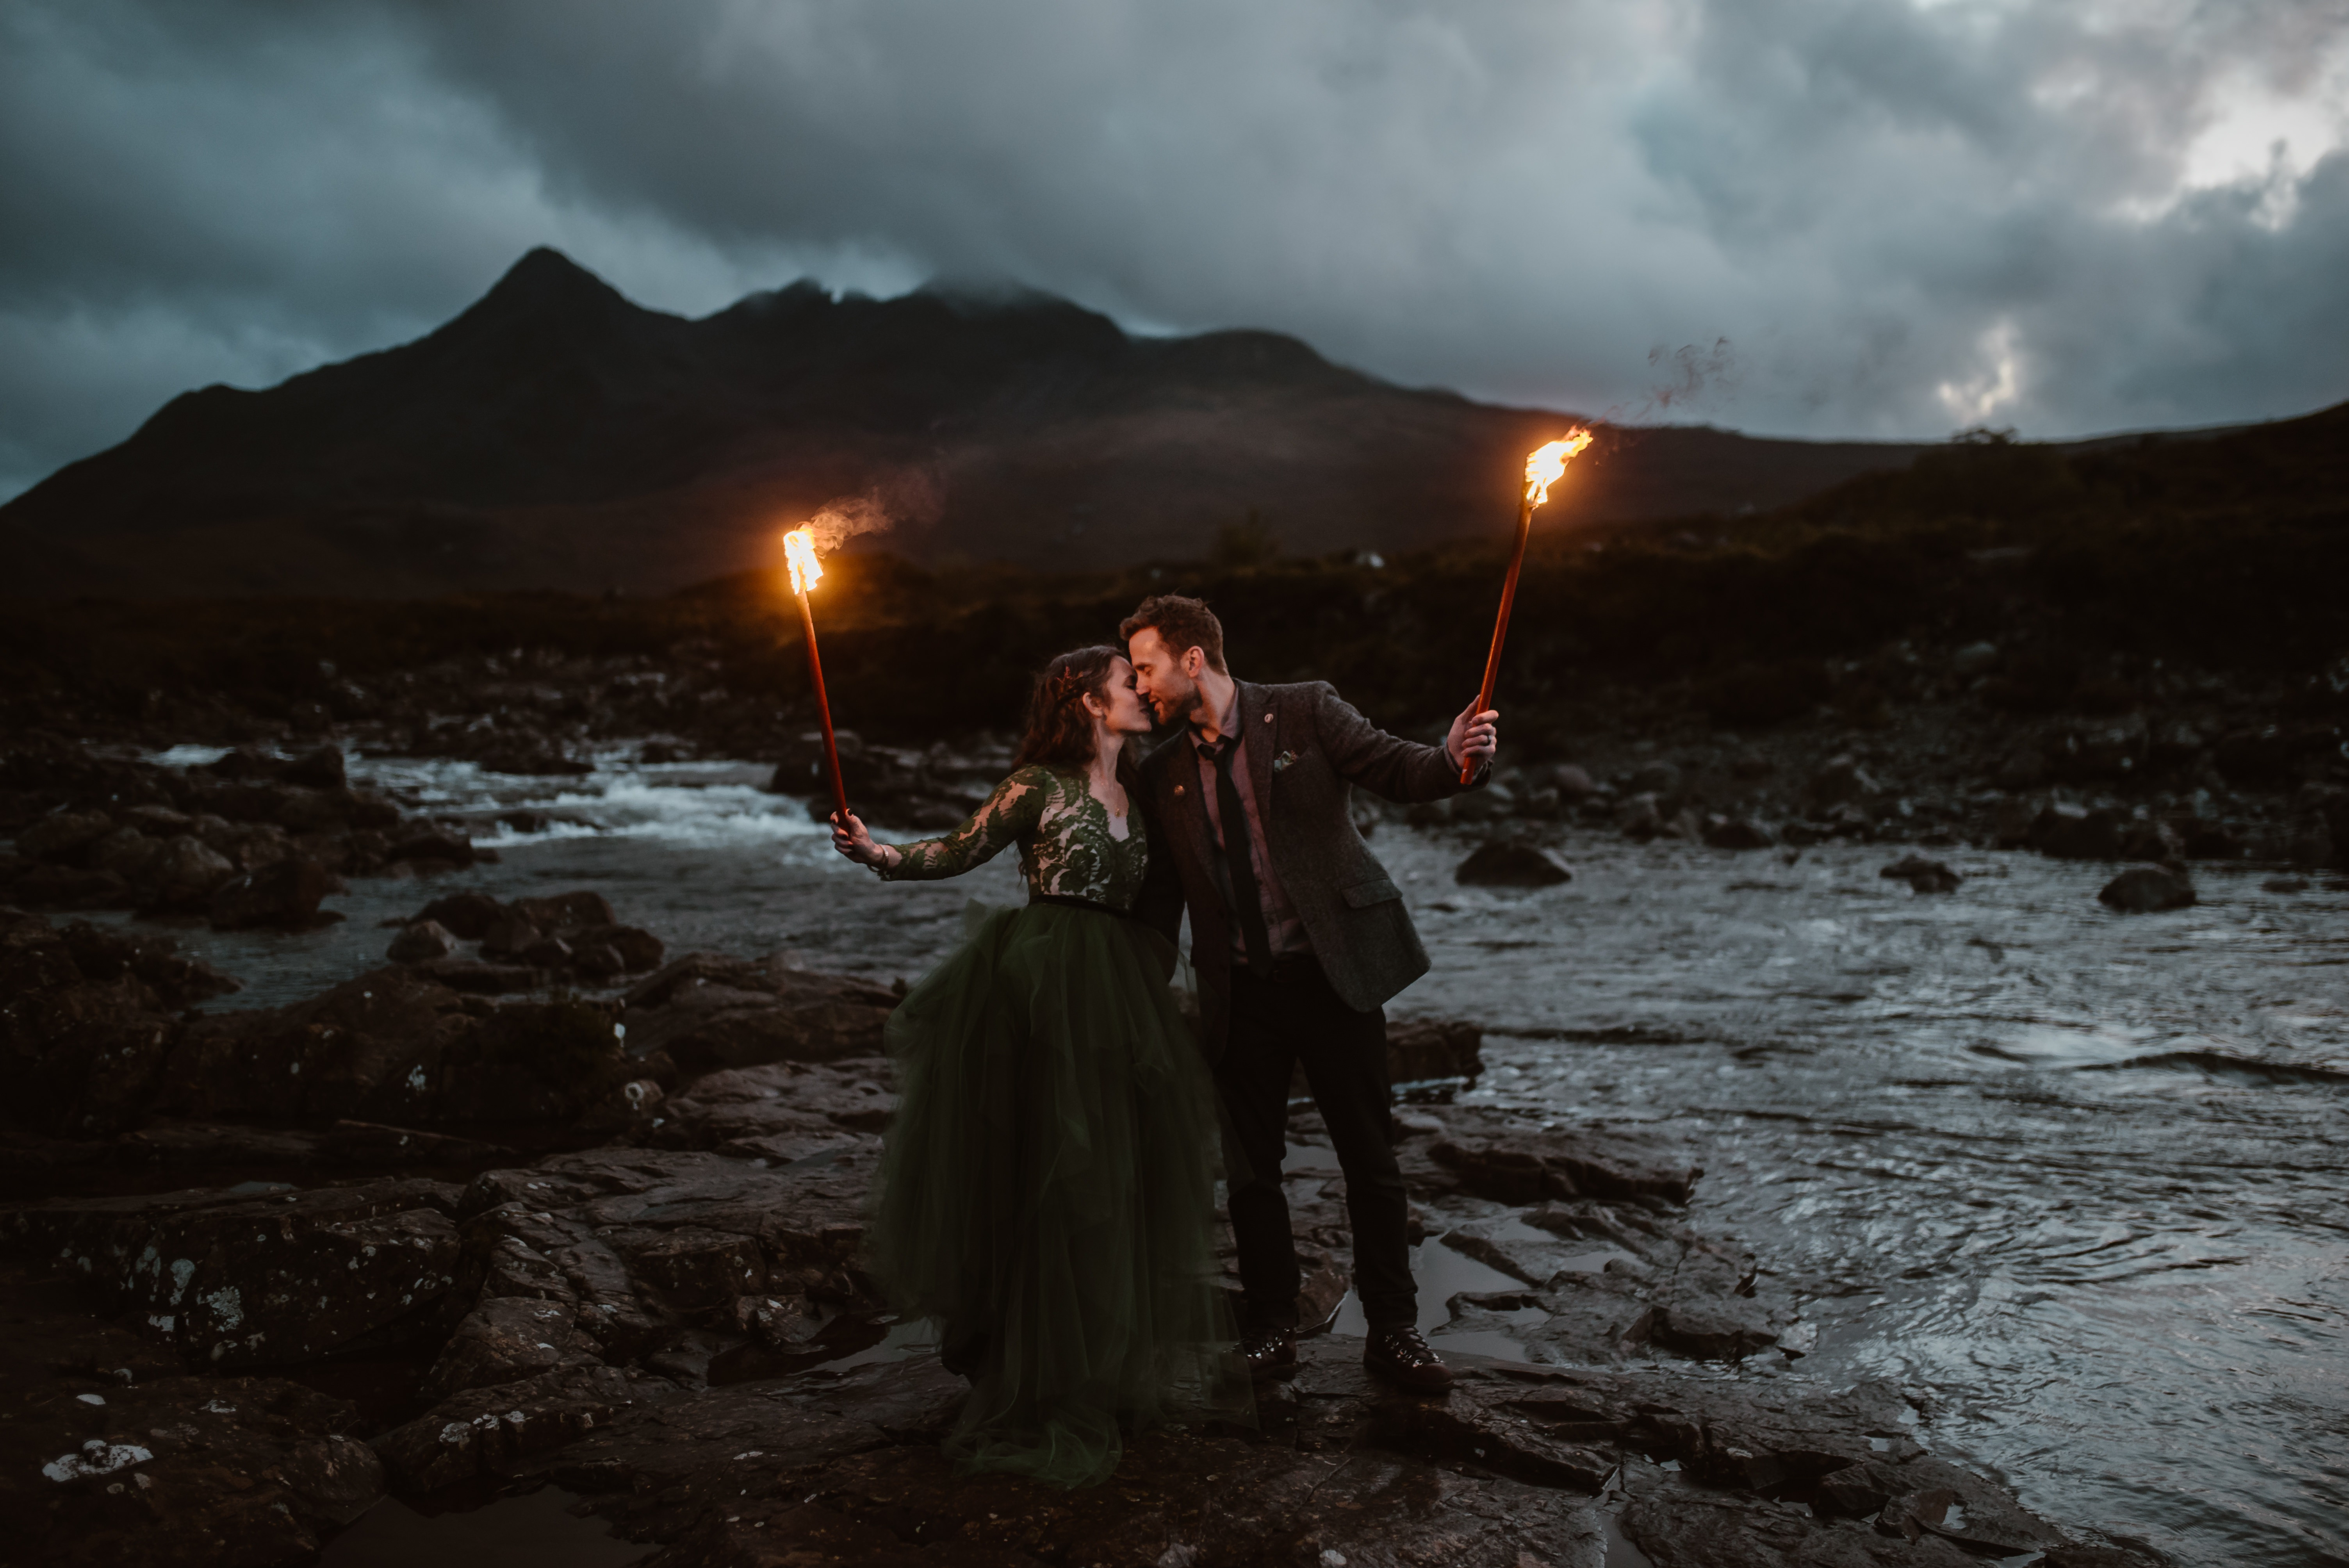 Couple with torches at river on stormy night photo by Virginia & Evan - Scotland